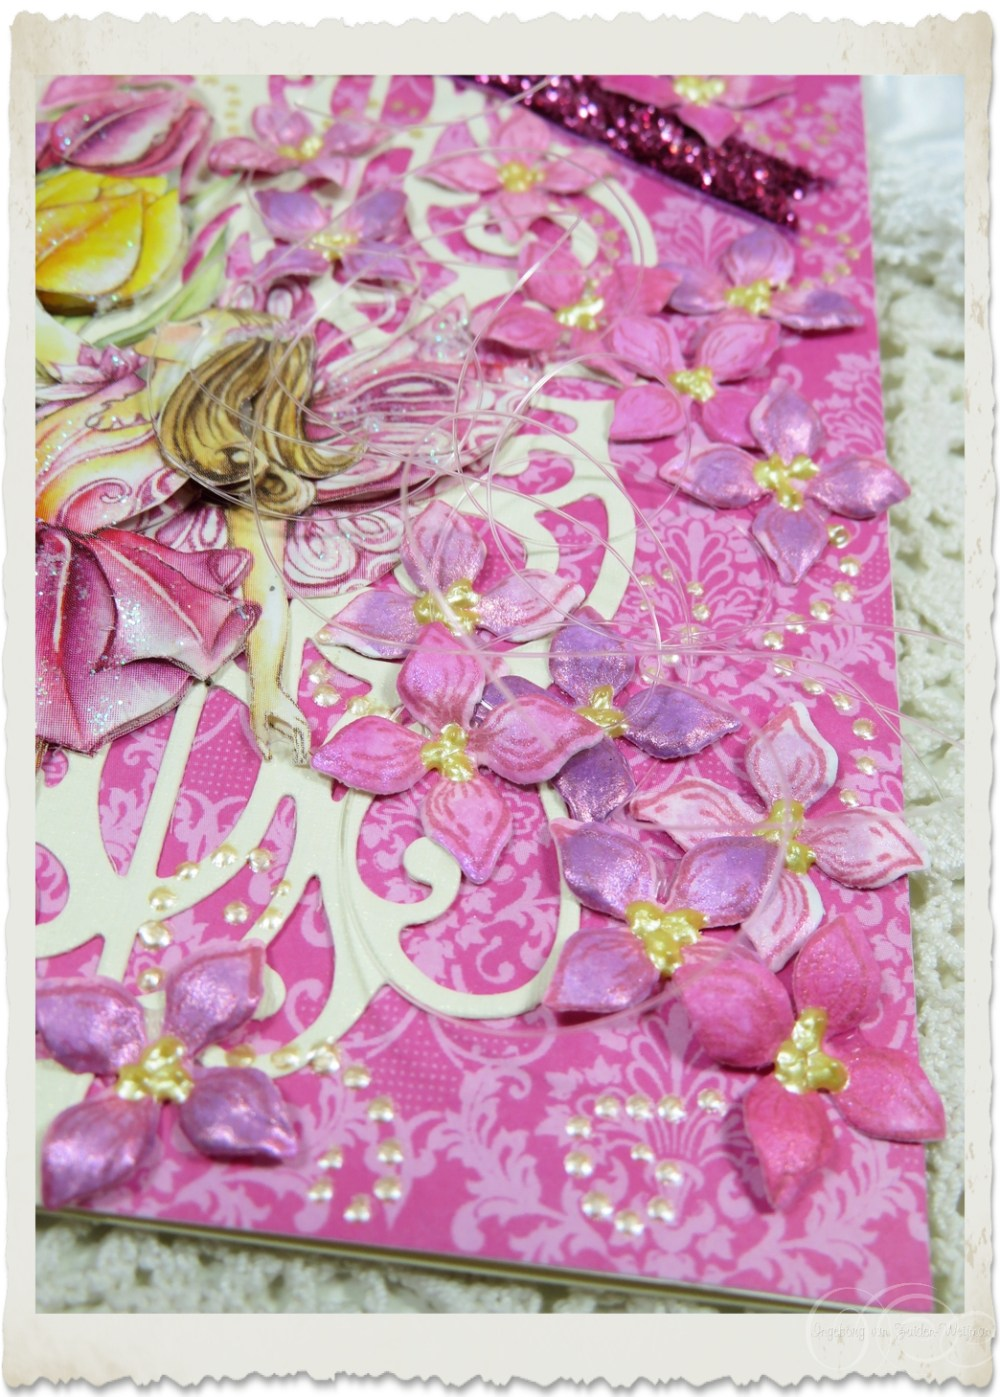 Lilacs by Ingeborg created with Heartfelt Creations stamps and dies